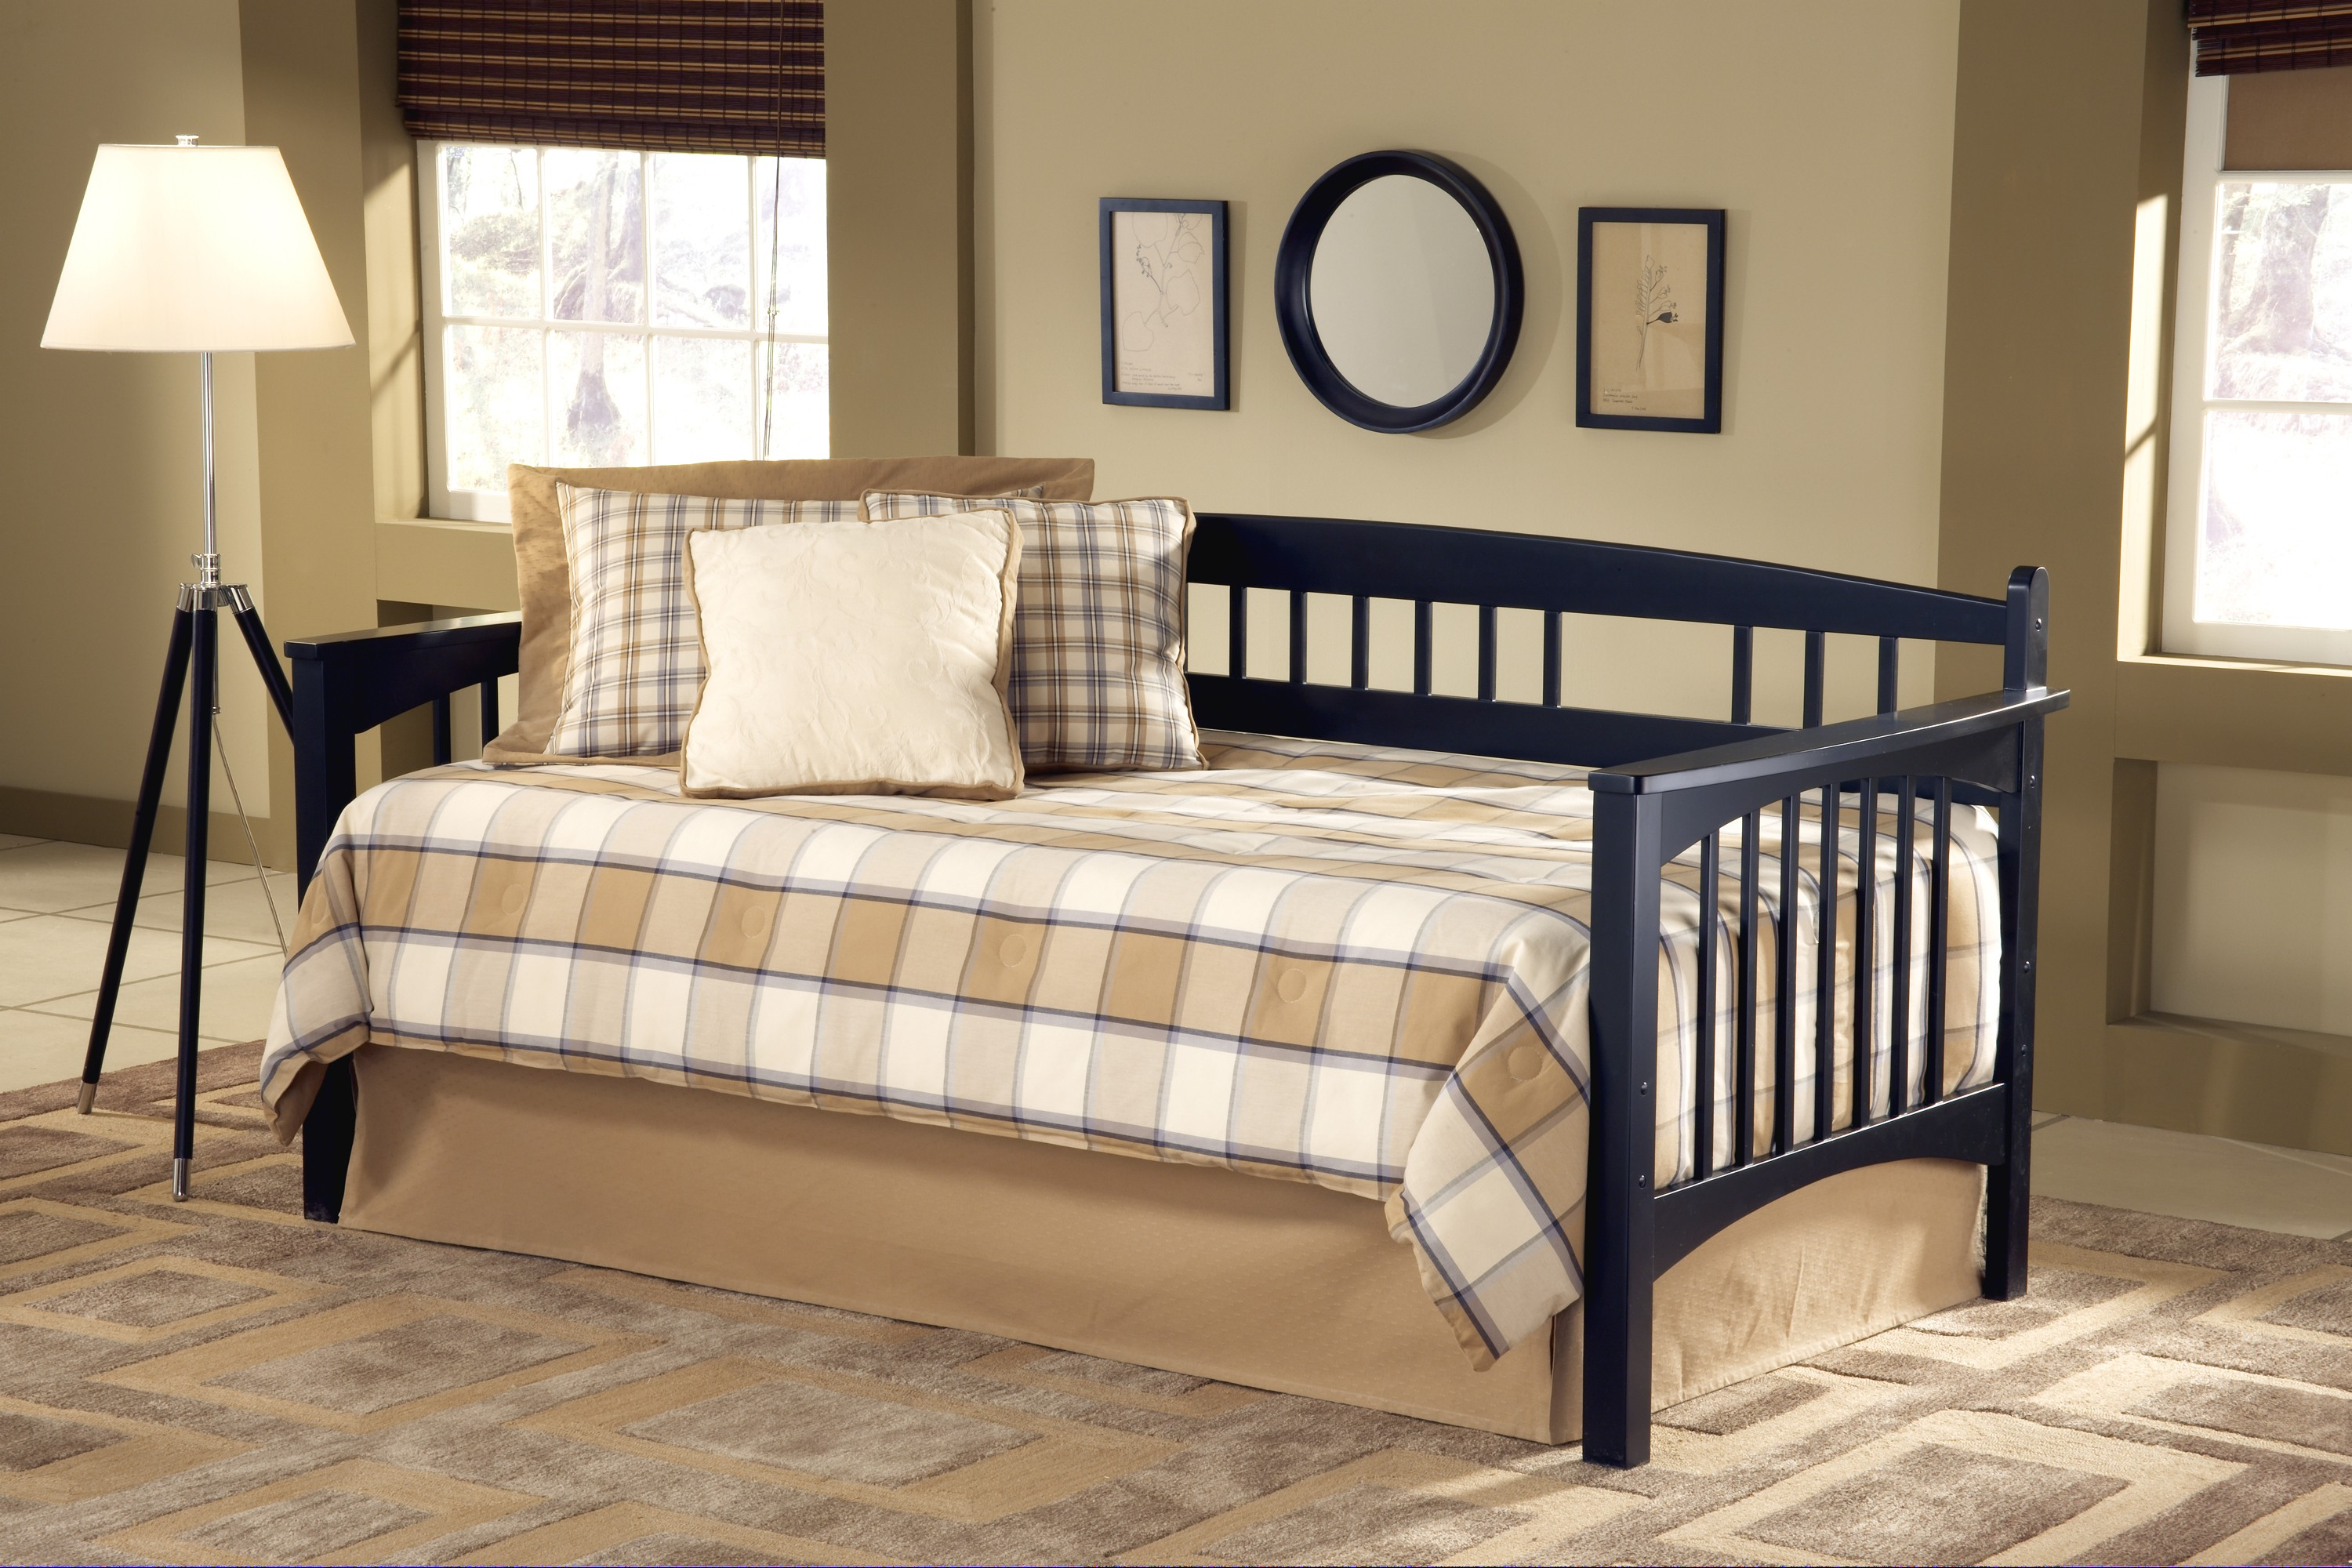 Full Size Day Bed | Queen Daybed Frame | Full Size Daybed with Trundle